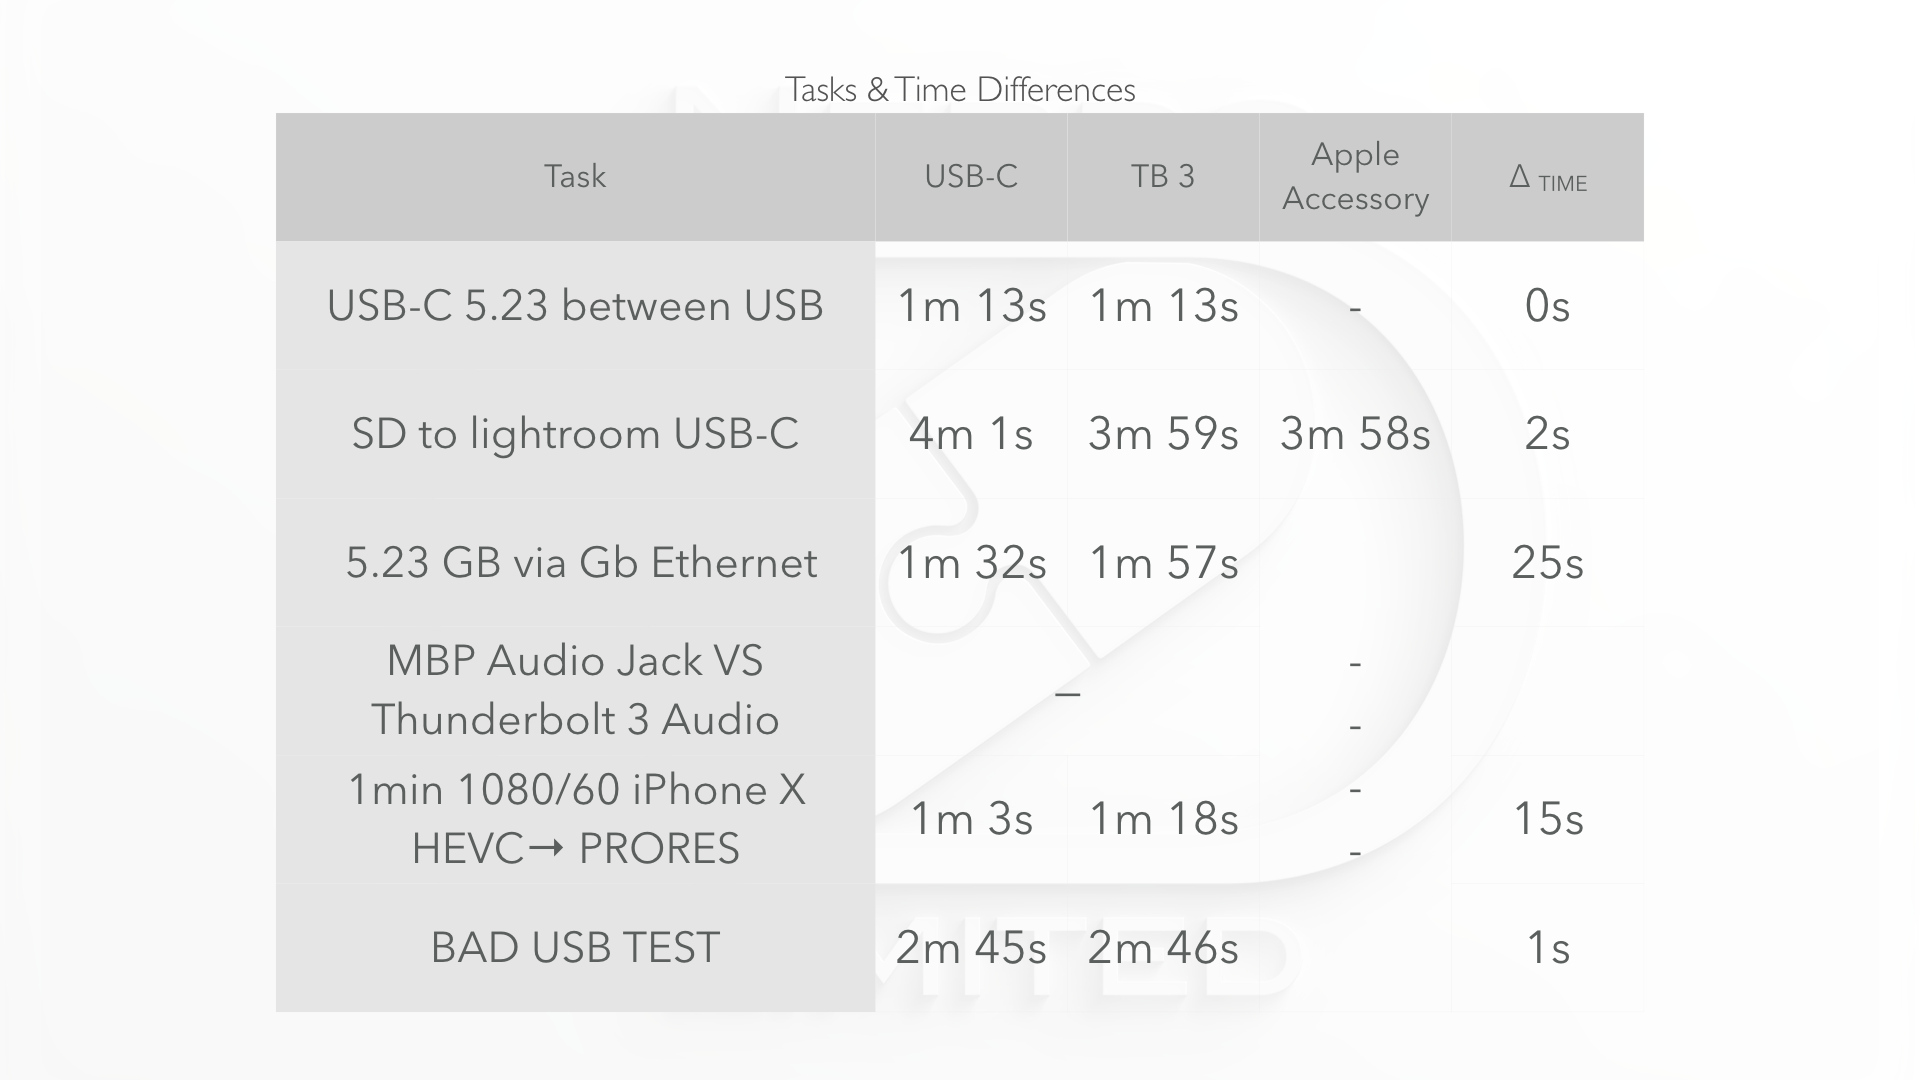 Time Differences between the two docks by task.